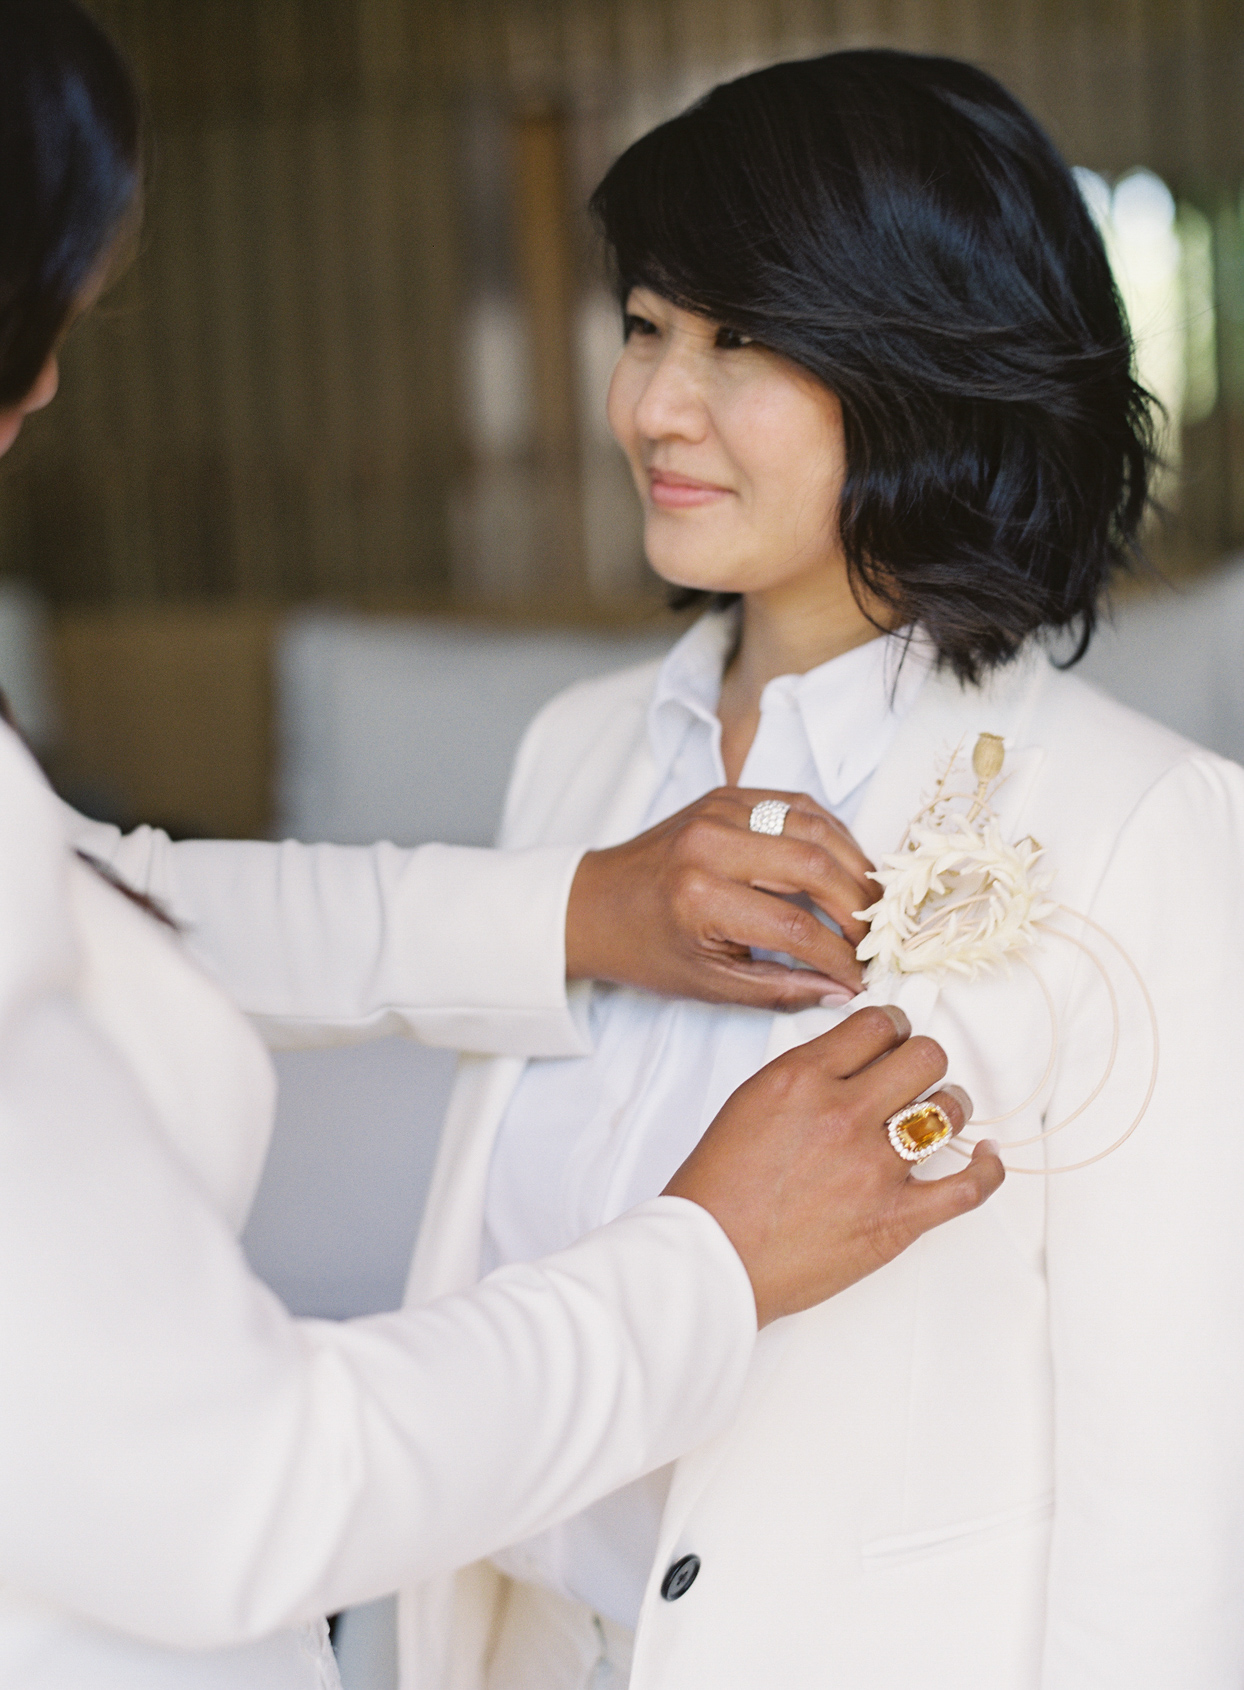 gloria putting on flower for vow renewal